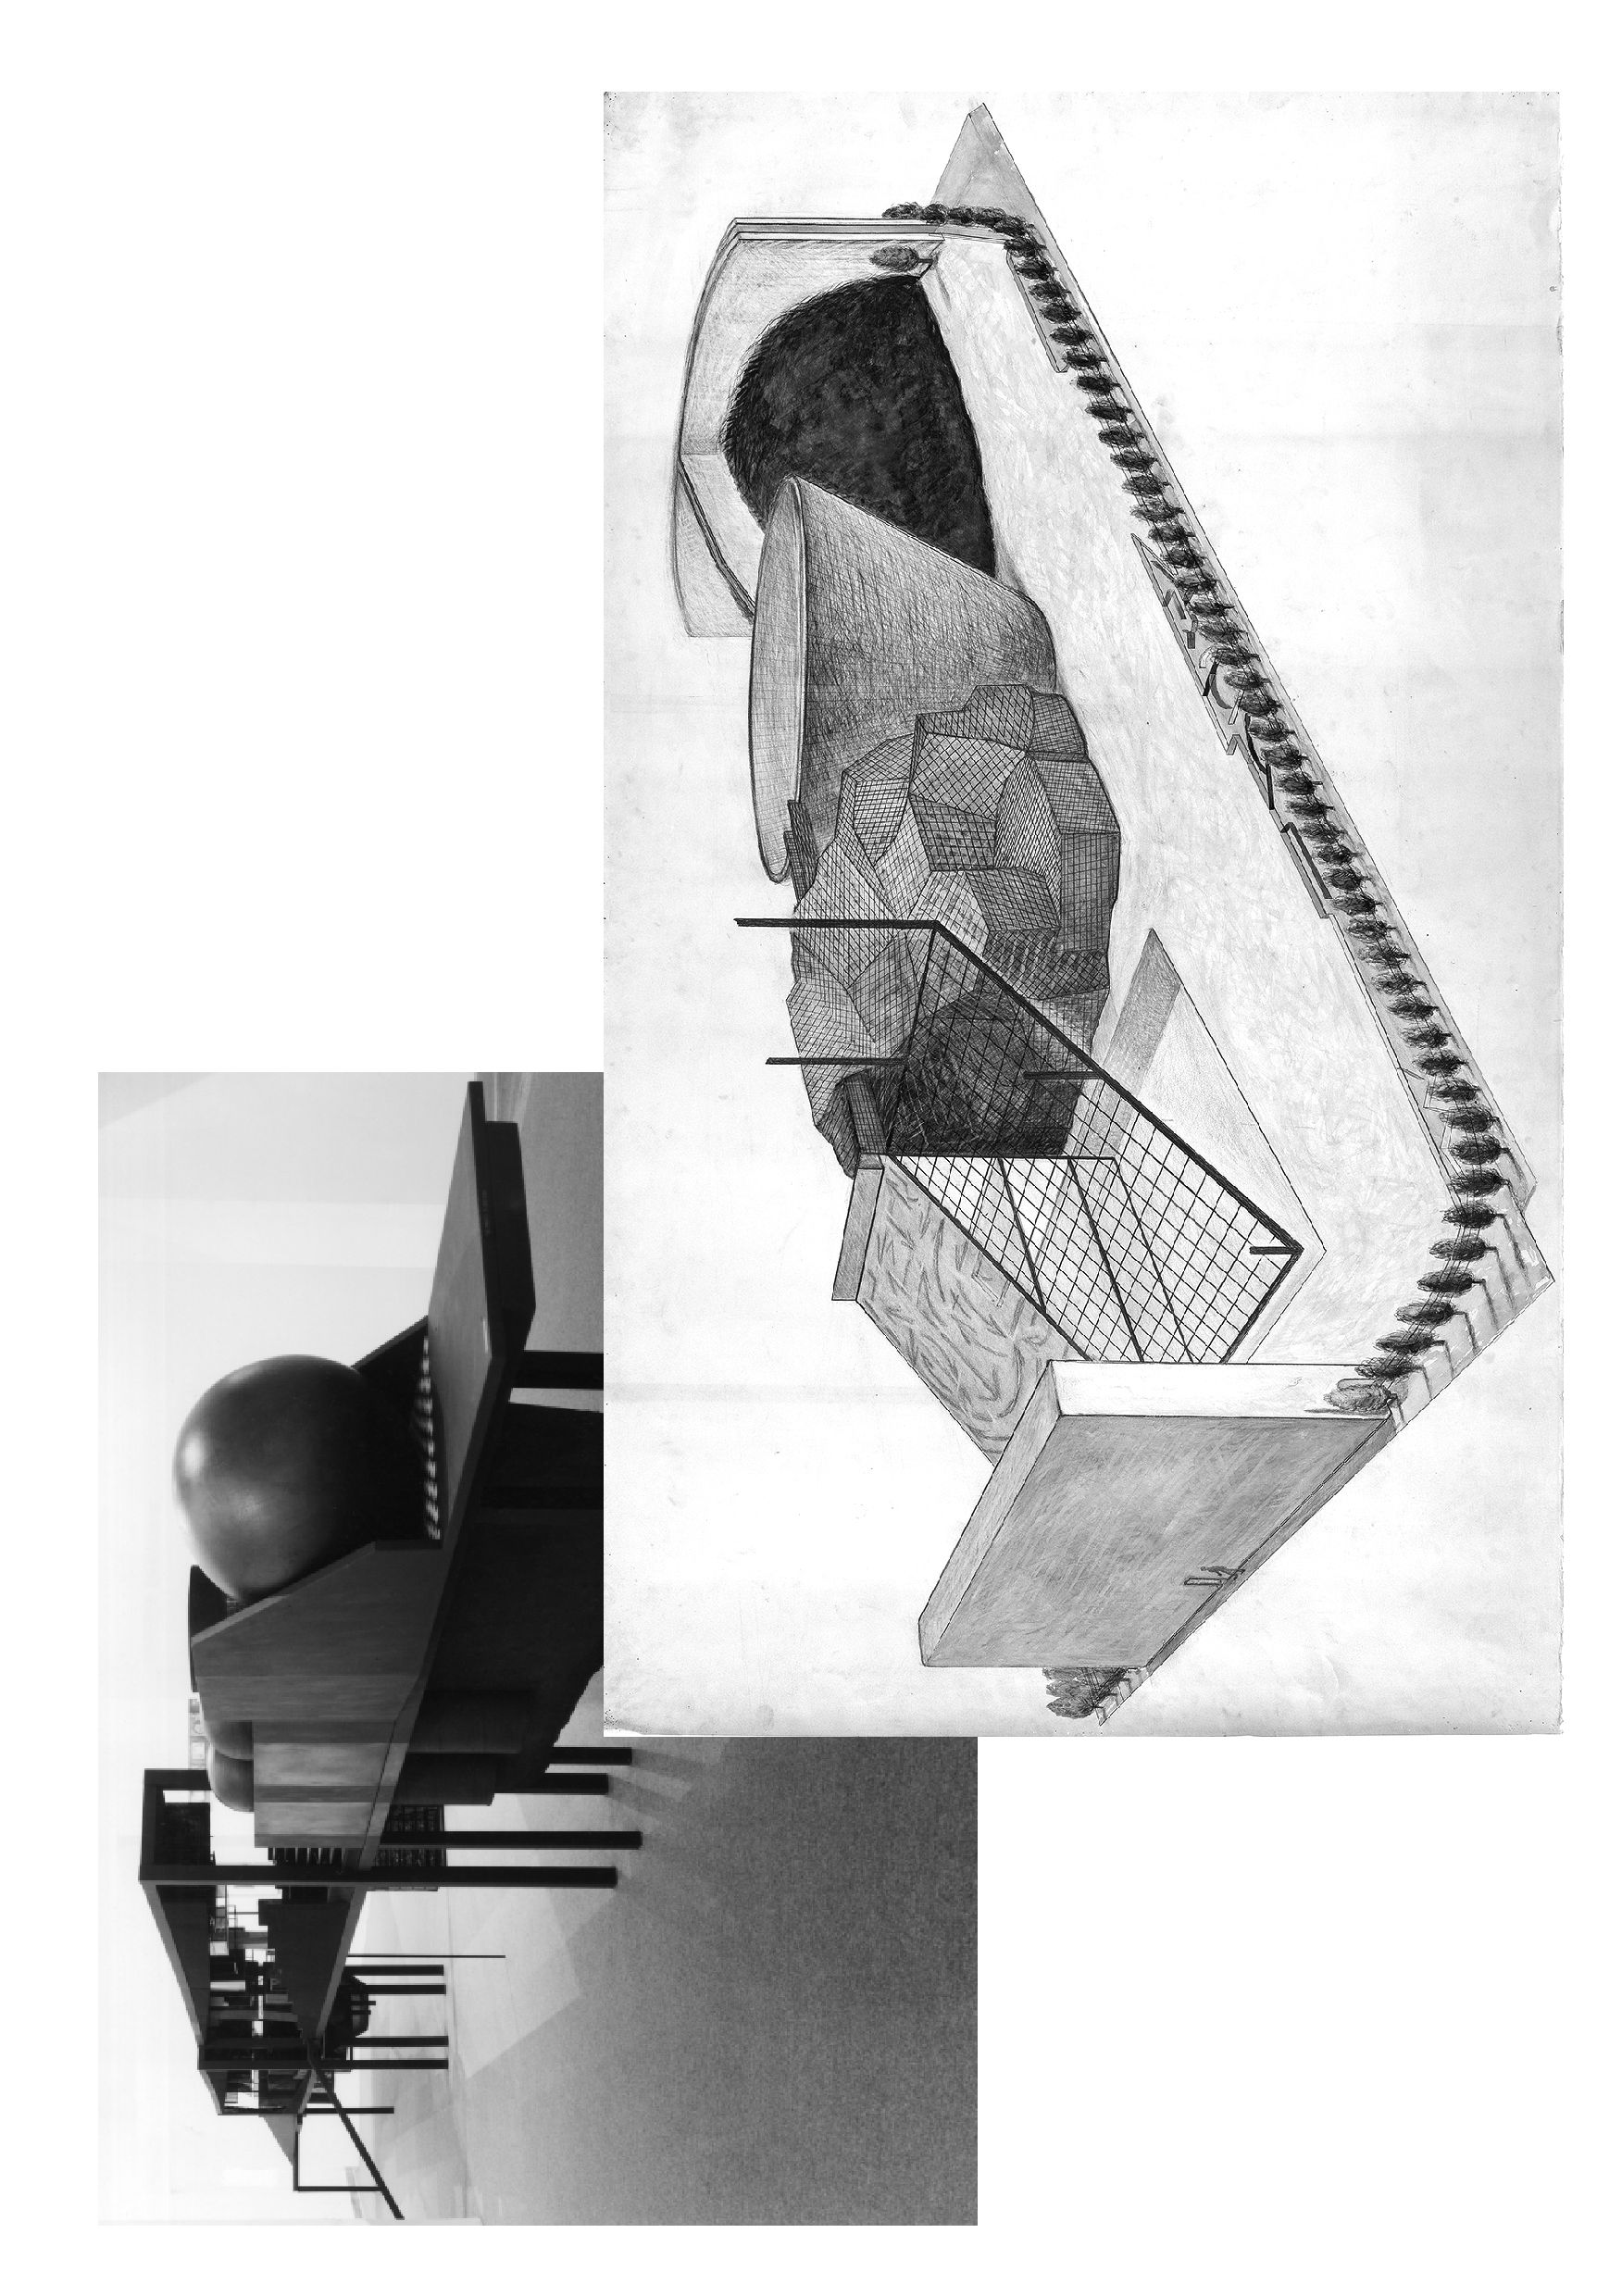 «The Process in Question/Bridge of Reversible Destiny» (1973-89) + «Container for Mind-Blank-Body» (1984). Courtesy:http